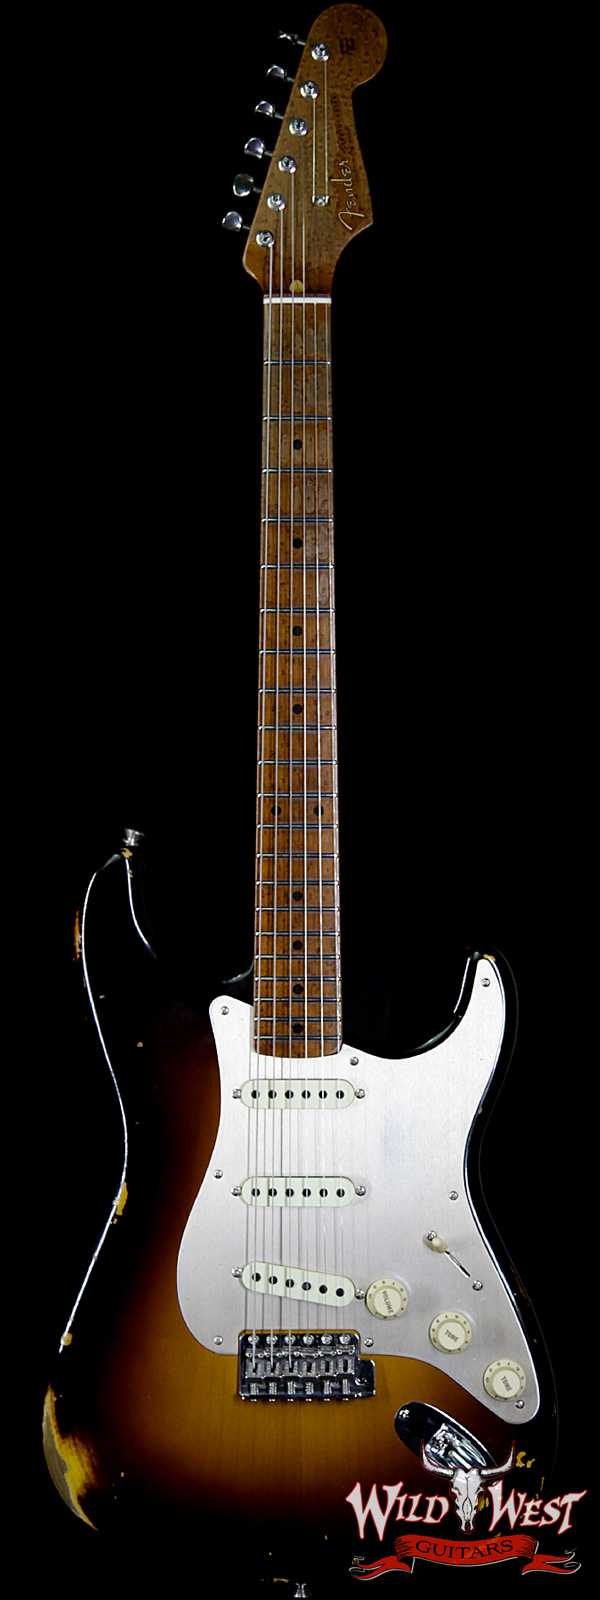 Fender Custom Shop 1956 Roasted Stratocaster Relic Birdseye Maple Neck 2 Tone Sunburst